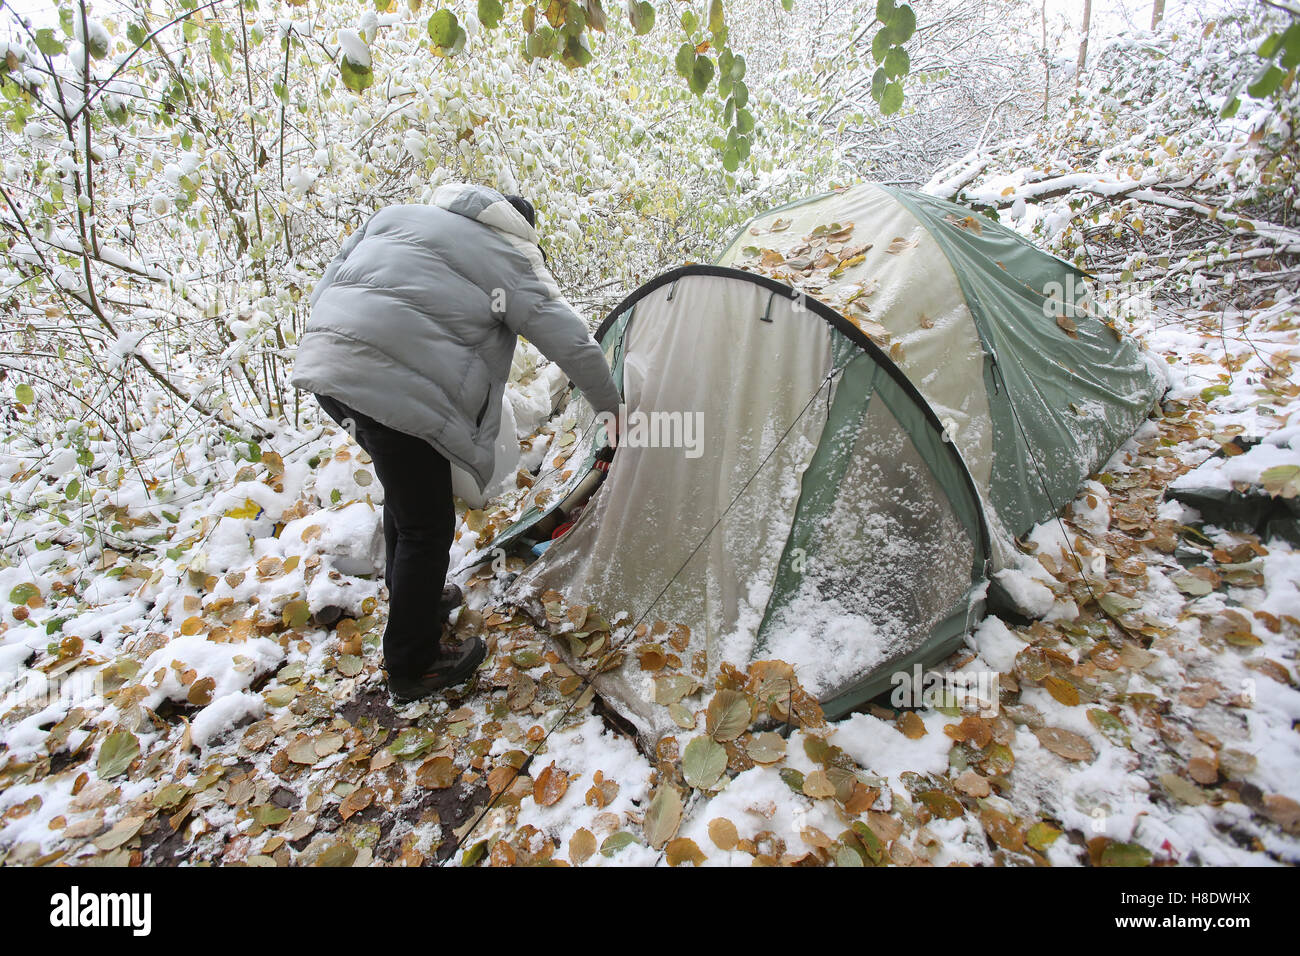 Hamburg, Germany. 09th Nov, 2016. Klaus Dieter D., A Homeless Man Living In  Hamburg, Outside In Subzero Temperatures With The Tent In Which He Sleeps  In A ...